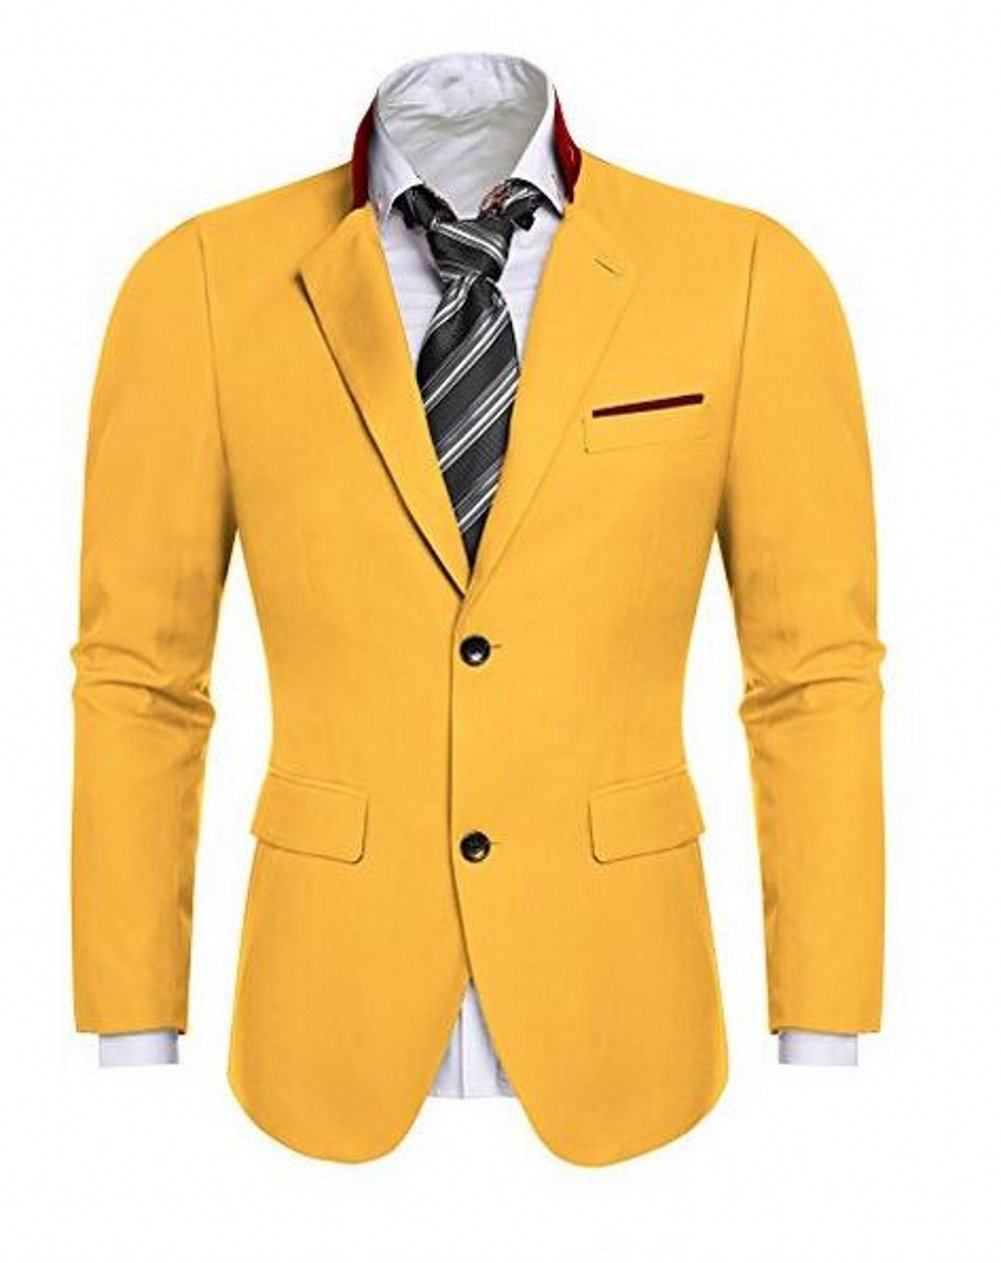 Love Dress Men's Casual Dress Suit Slim Fit Stylish Blazer Coats Jackets Yellow 4XL